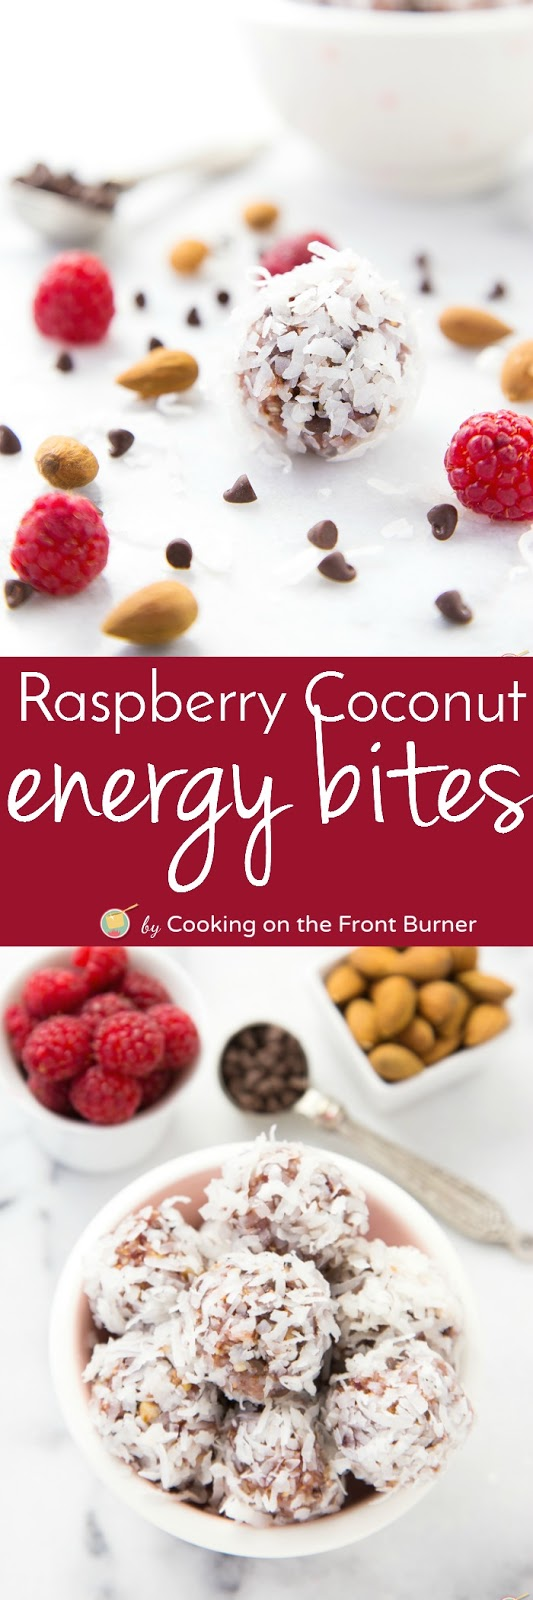 Time for a pick me up with these Raspberry Coconut Energy Bites!